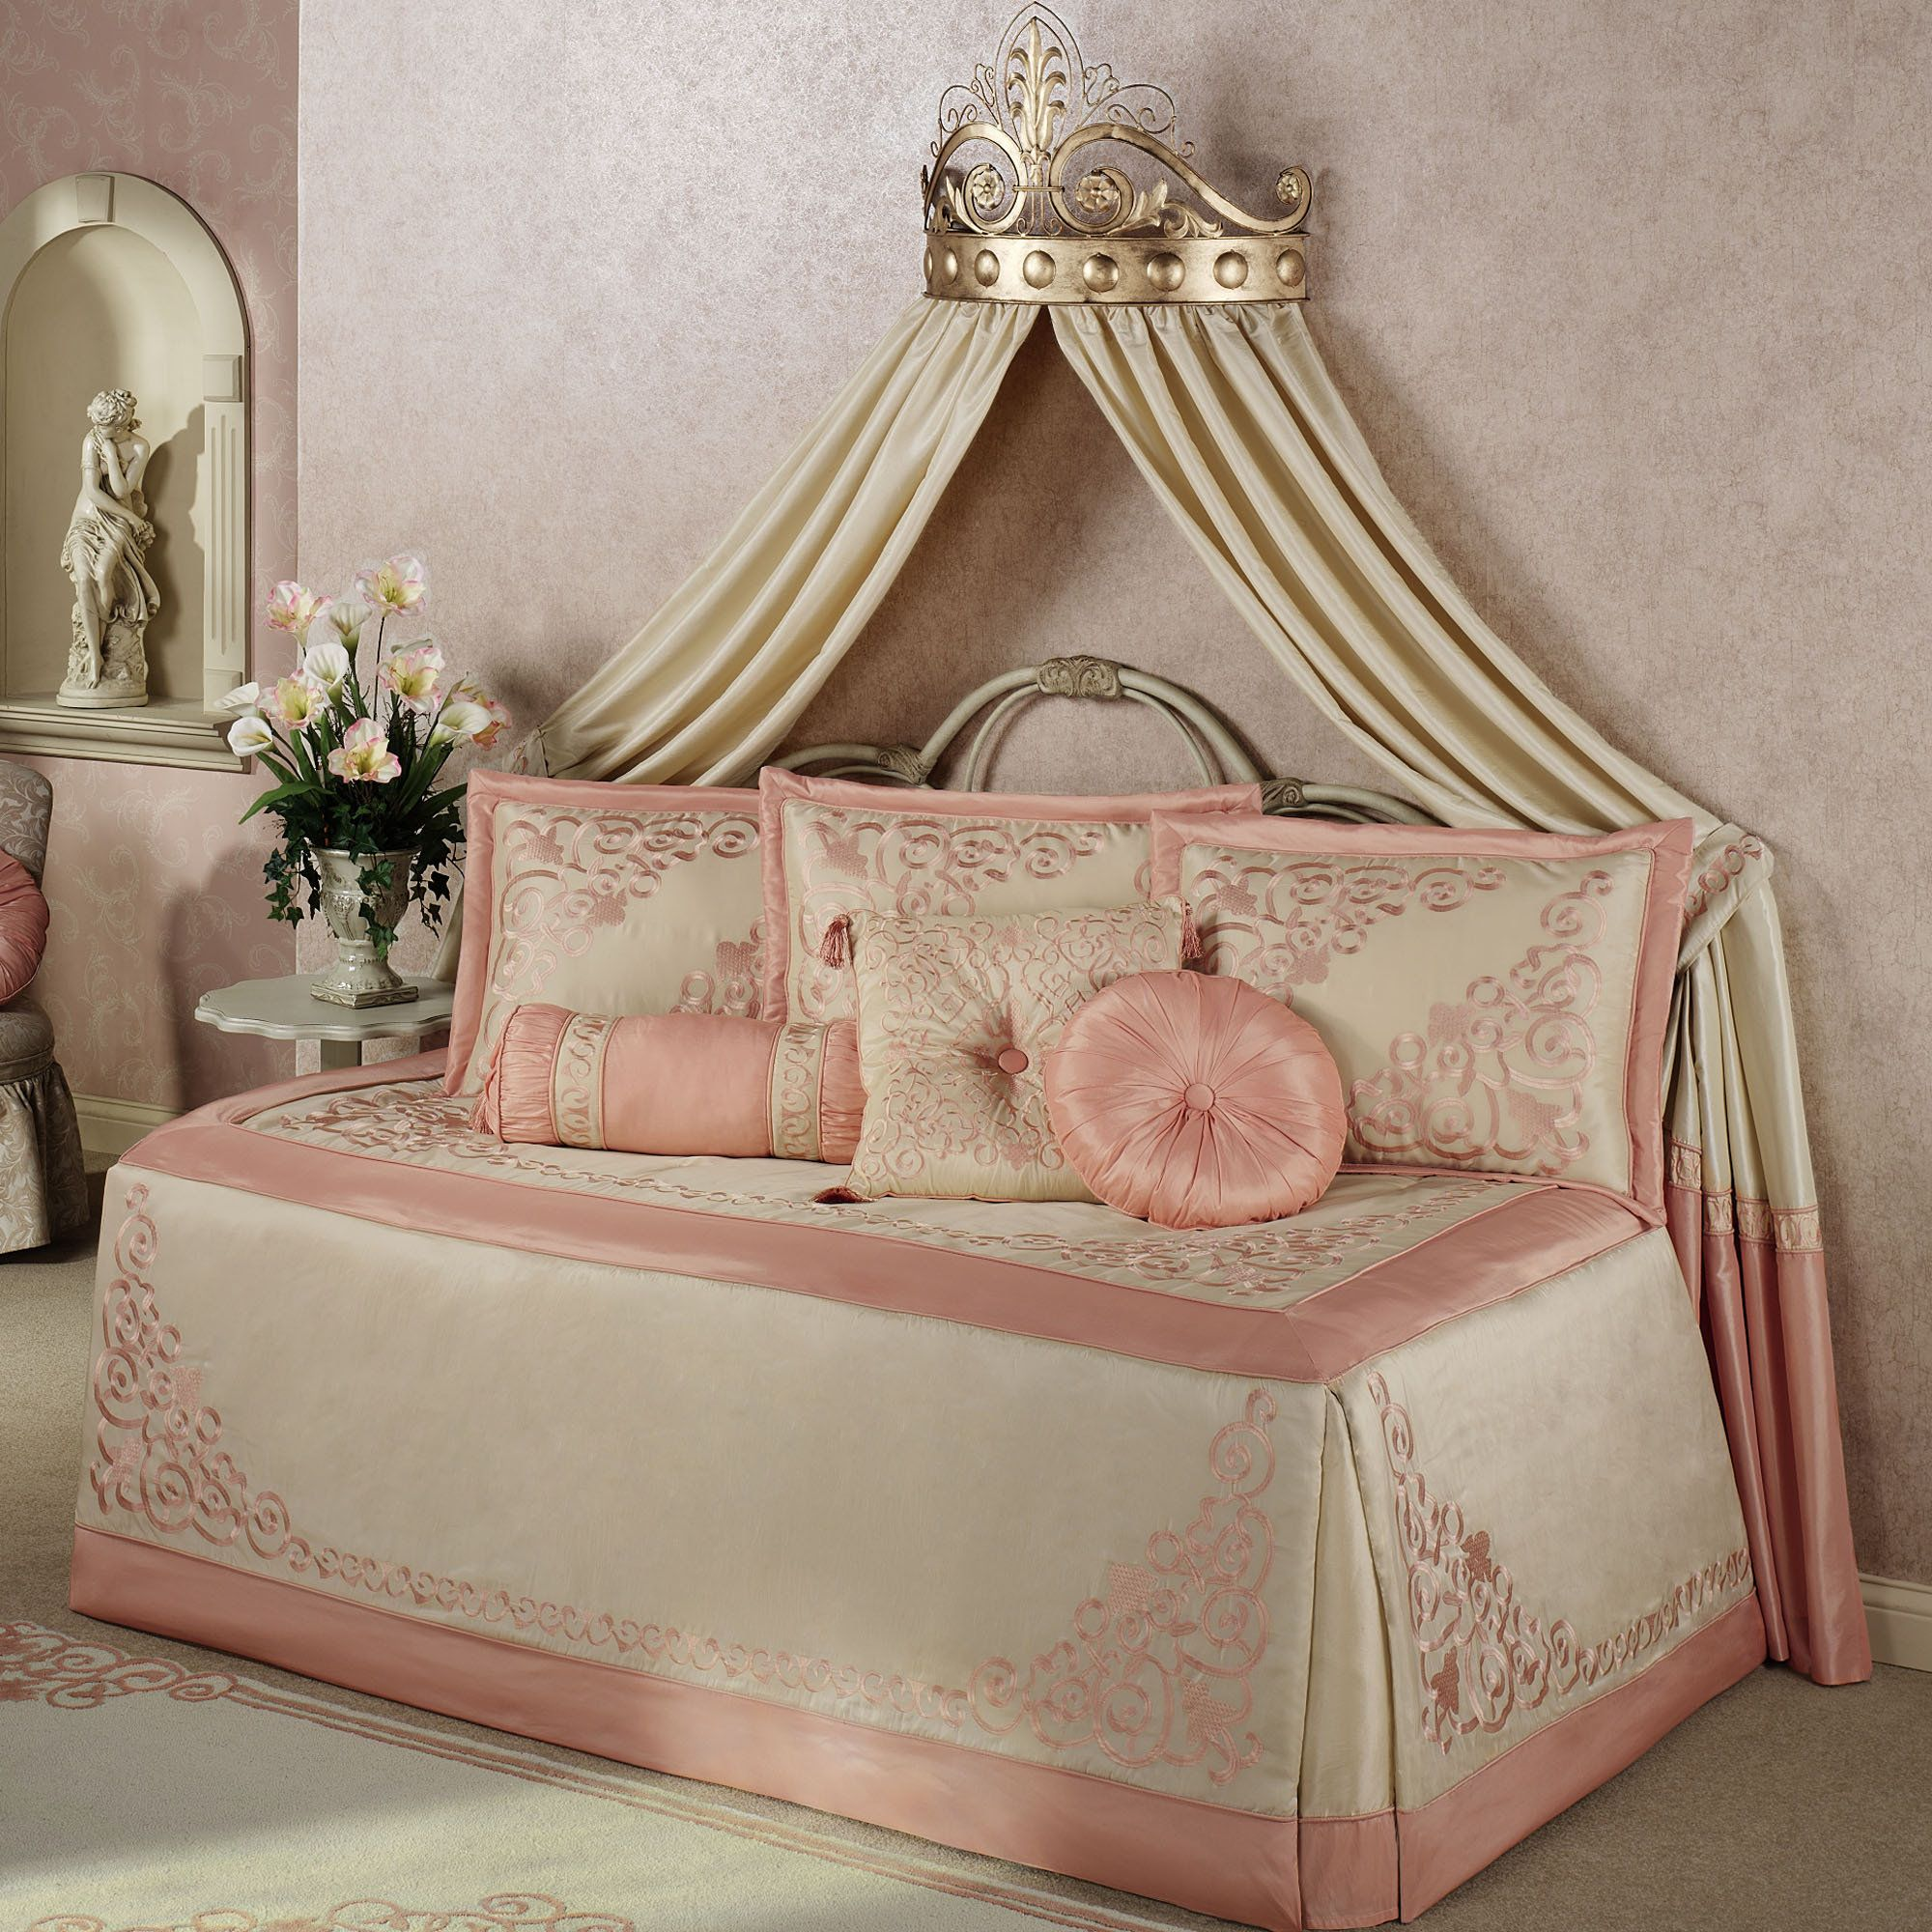 Princess Blush Daybed Bedding | Home Decorating Ideas | Pinterest ...